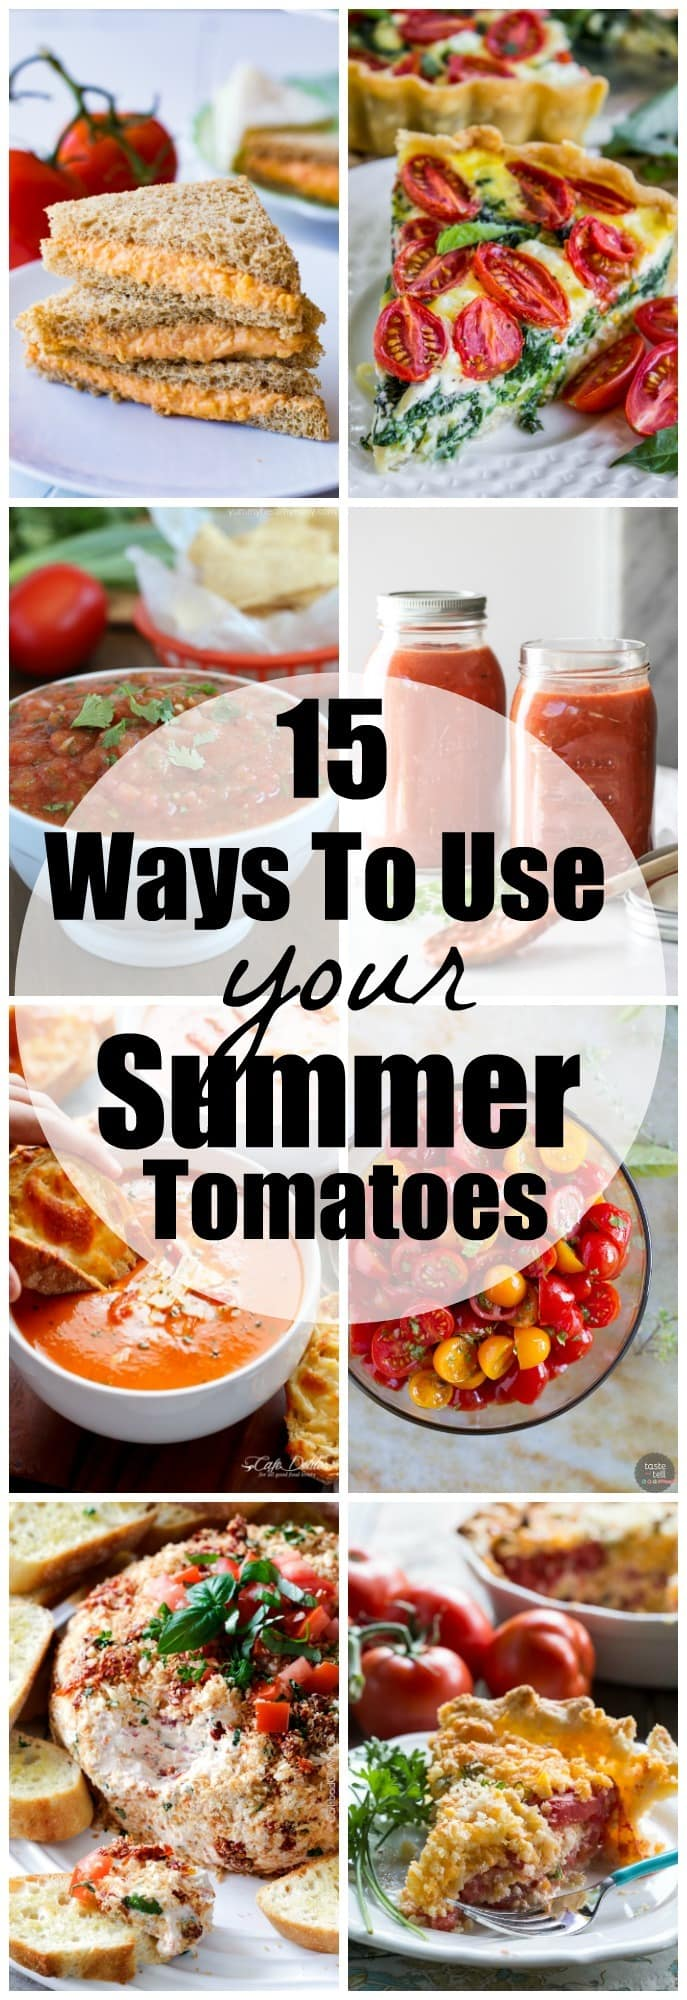 15 tomato recipes to use summer tomatoes yummy healthy easy 15 tomato recipe to use your summer tomatoes scrumptious ways that you can enjoy forumfinder Image collections